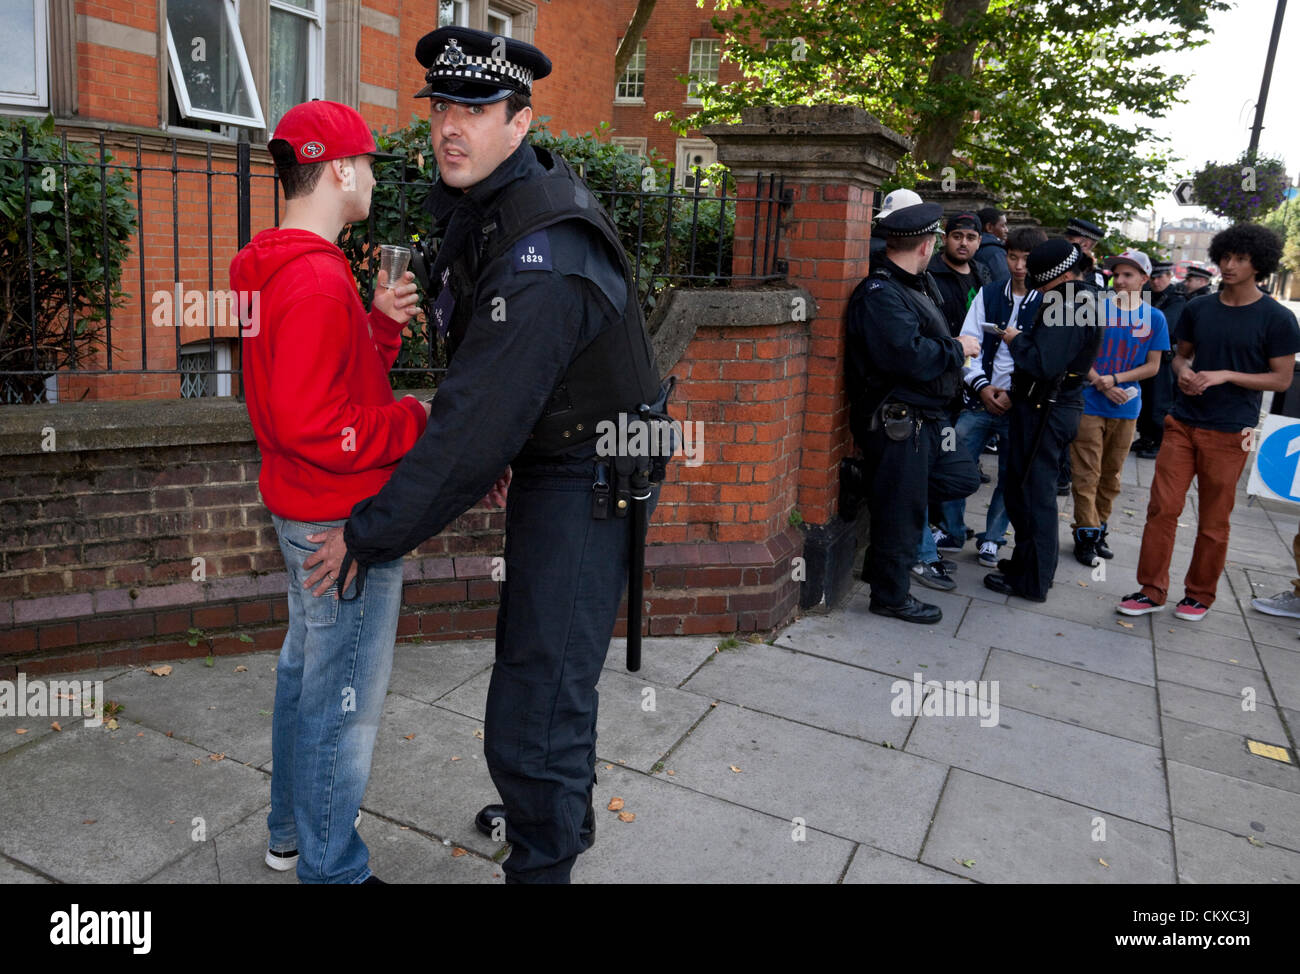 August 27th, 2012, London, UK. A group of Metropolitan police officers stop and search a group of youths at the - Stock Image